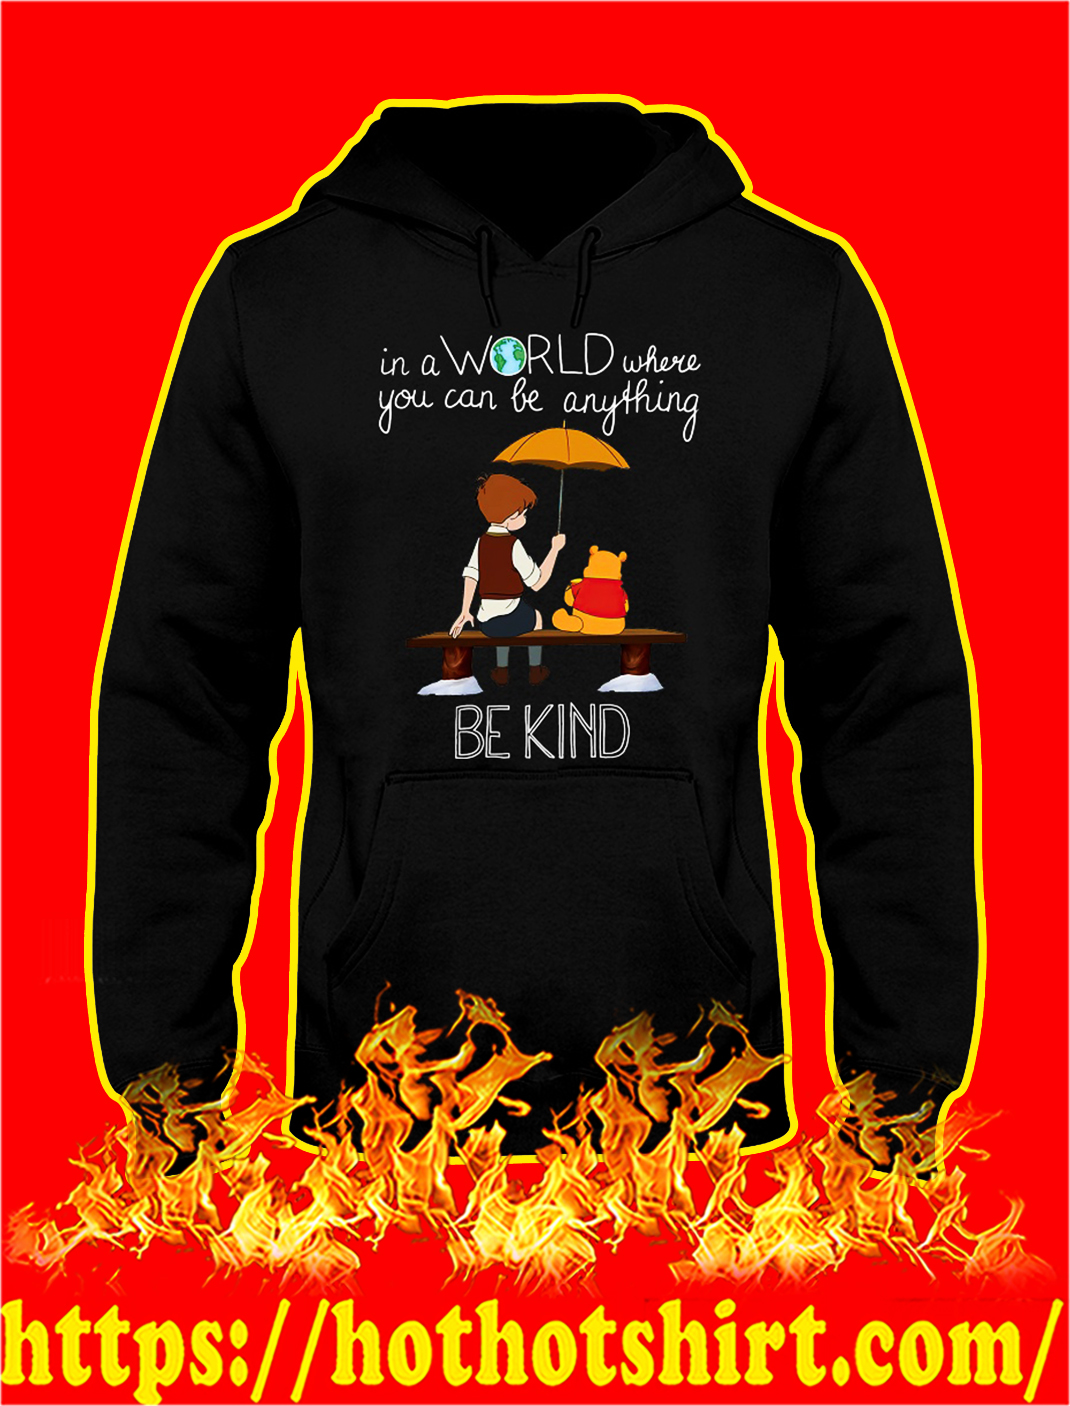 Pooh In a world where you can be anything be kind hoodie